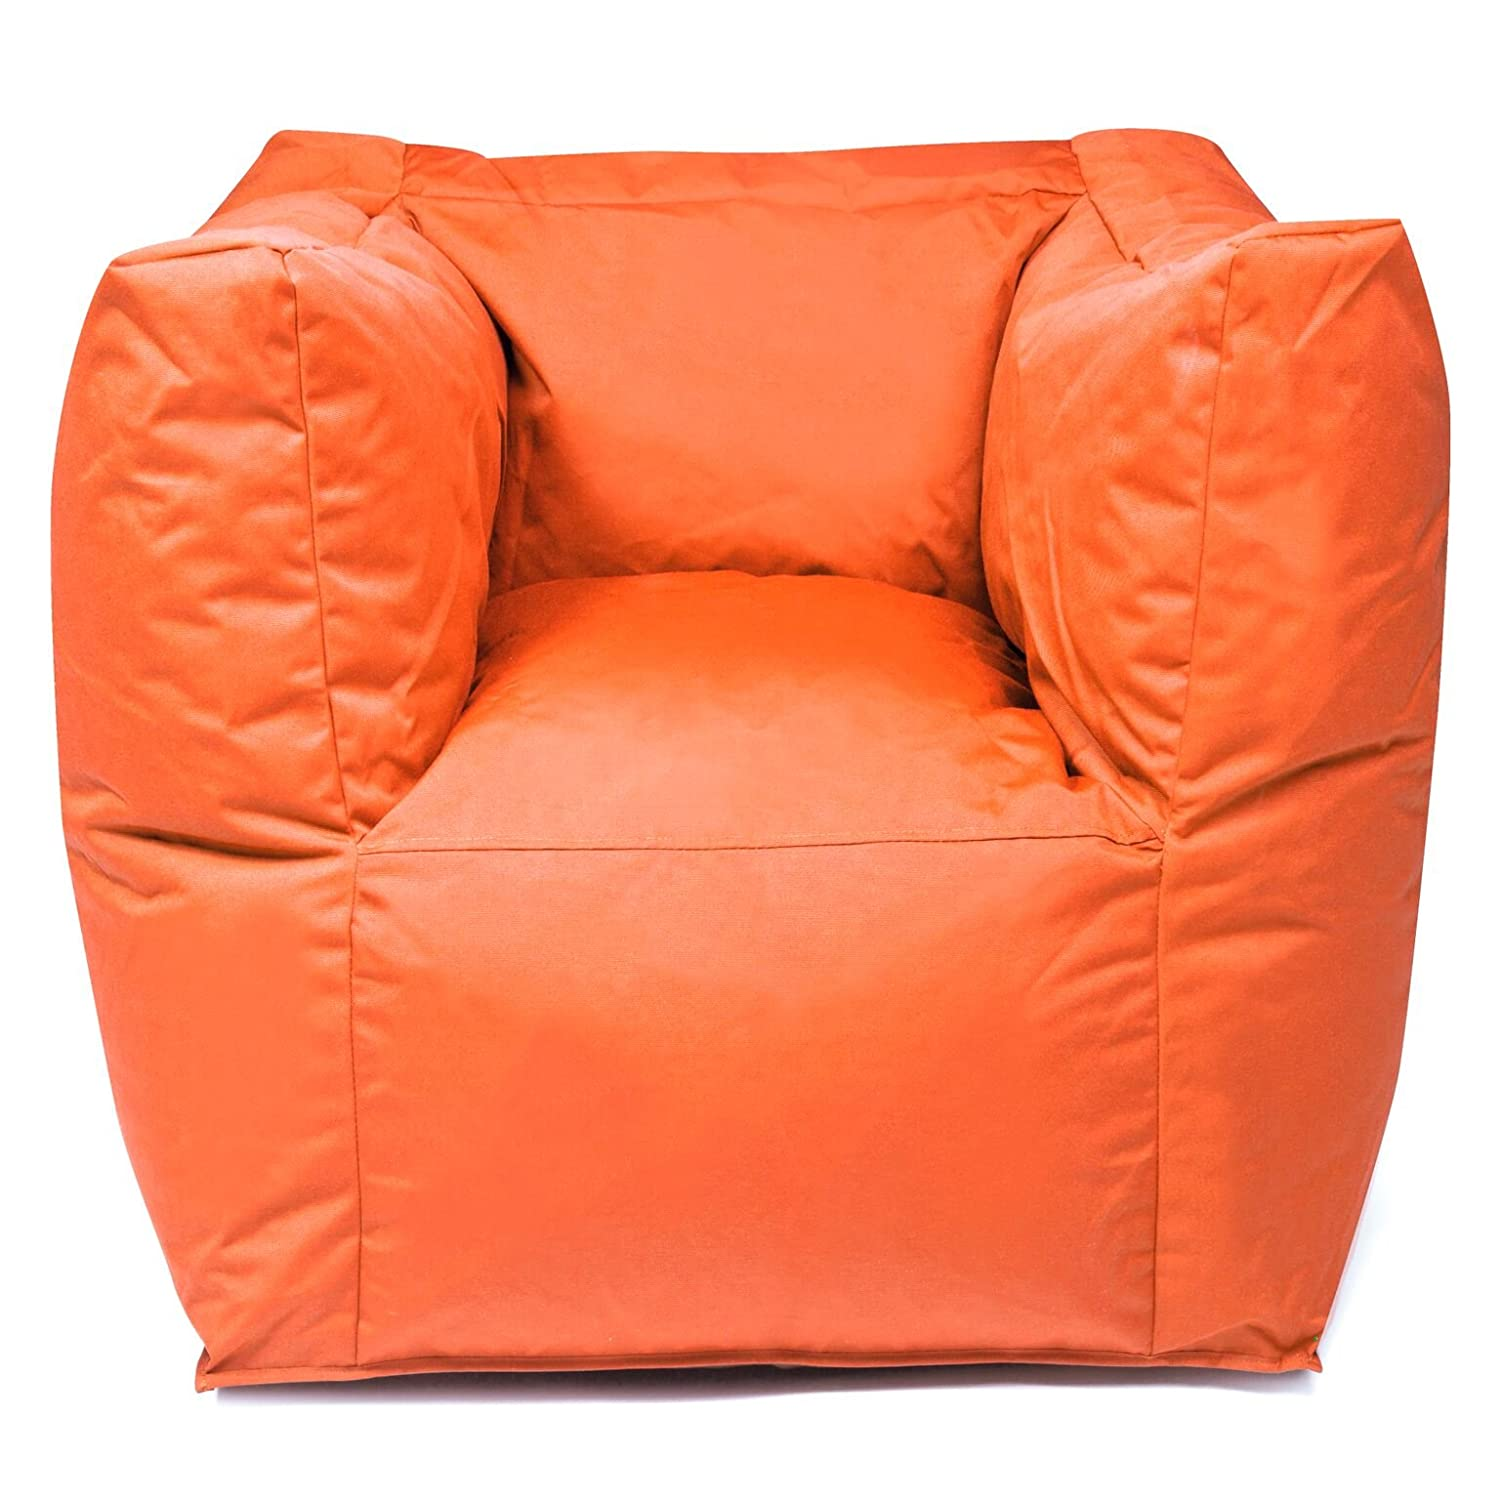 Outdoor Sitzsack Sessel Valley Plus wetterfest frostsicher Hocker Gartenstuhl Gartensessel Gartenliege für draußen Outdoor Lounge Gartenmöbel moderner Look (Orange)